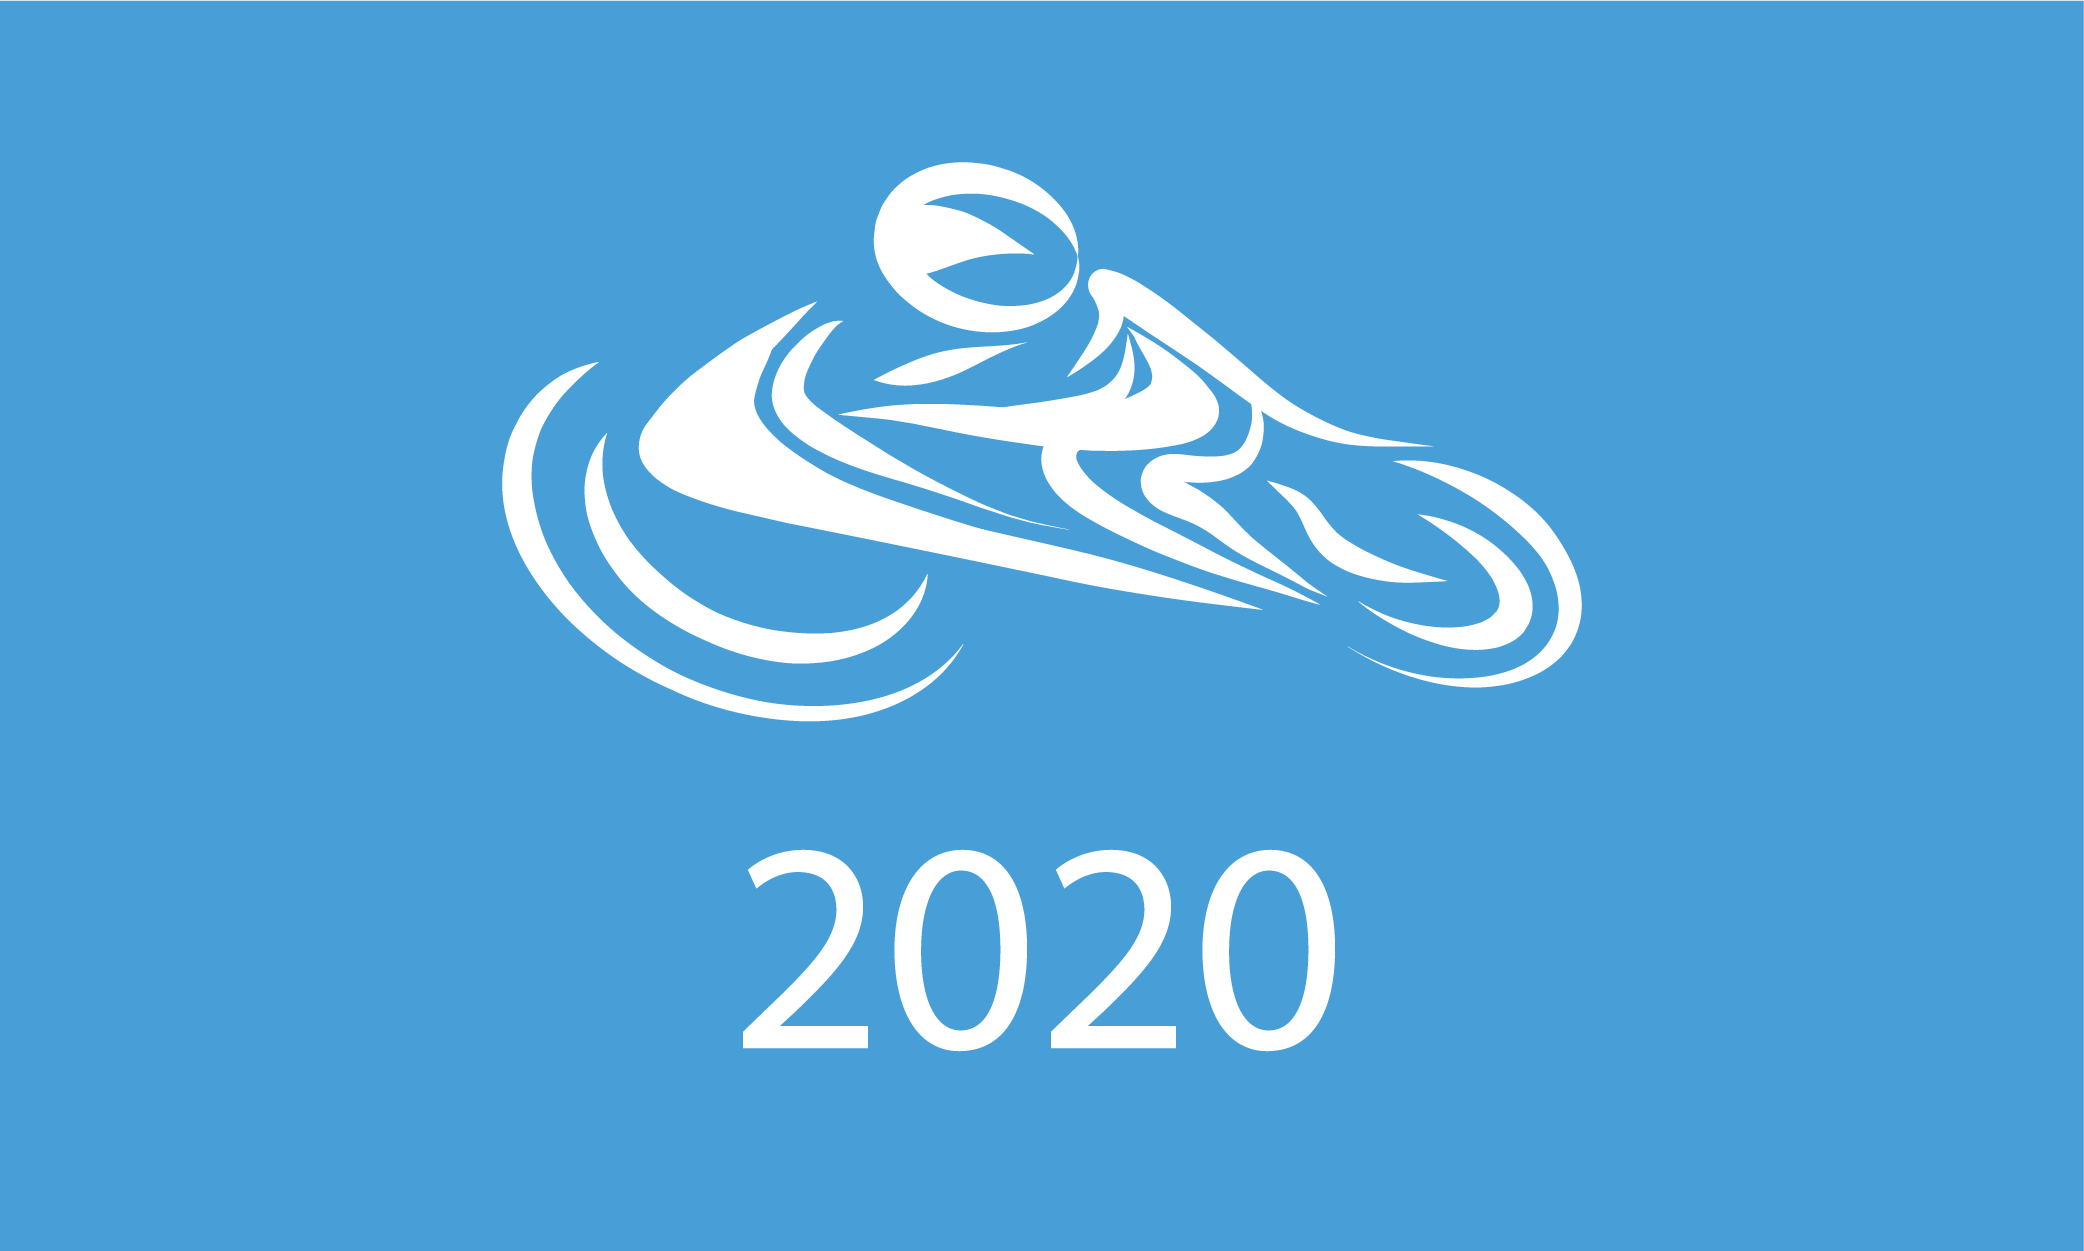 MCUI (UC) Flags and Anti-Doping Course 2020